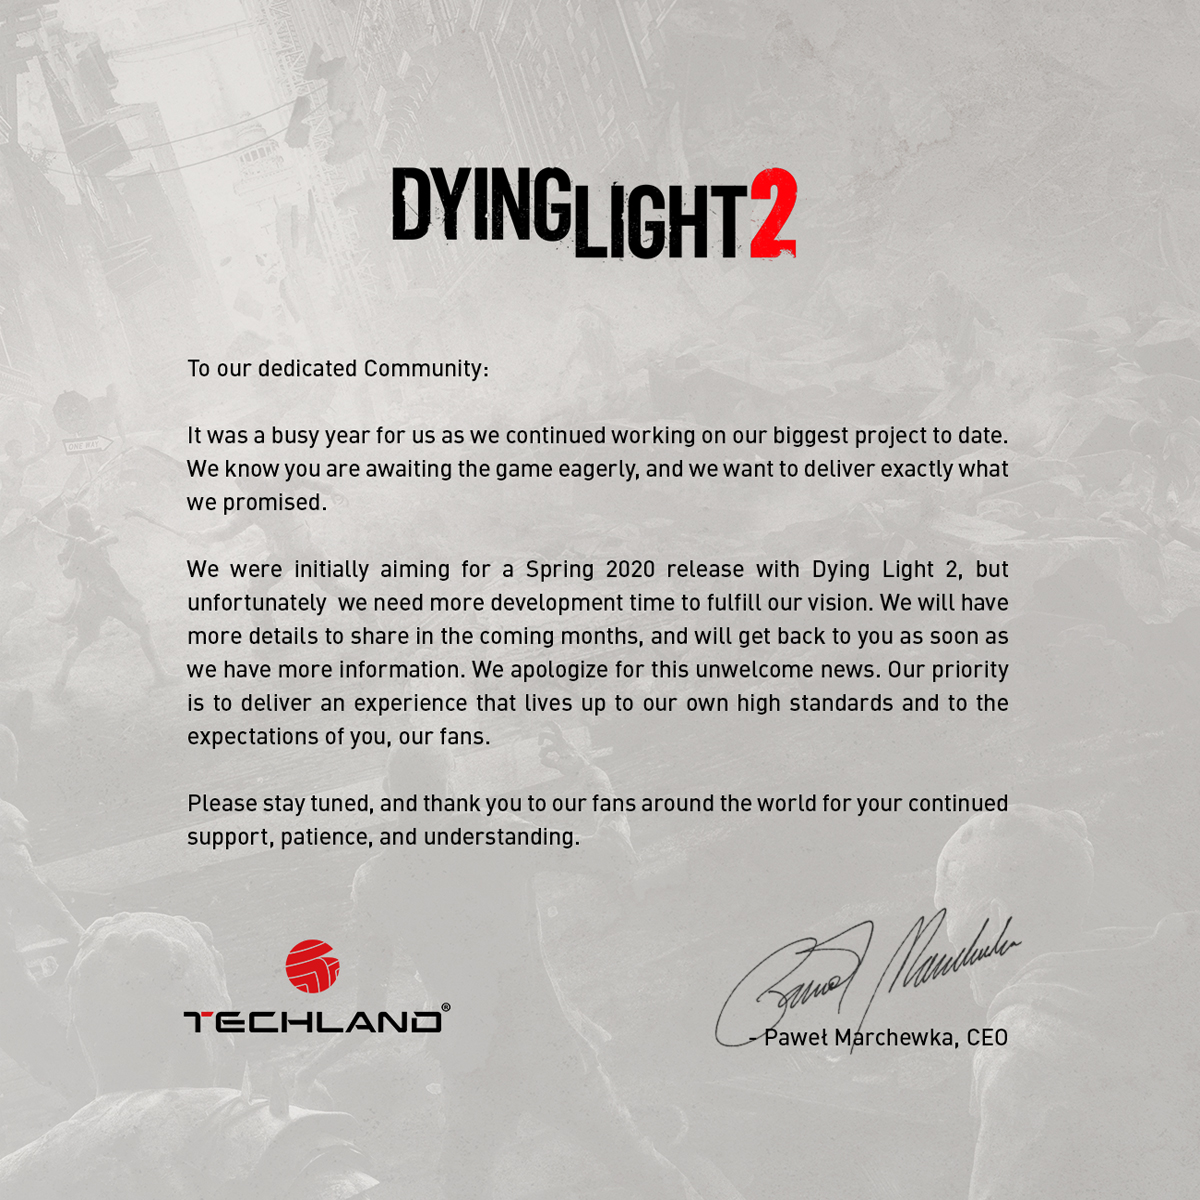 Dying Light 2 – Delay Statement